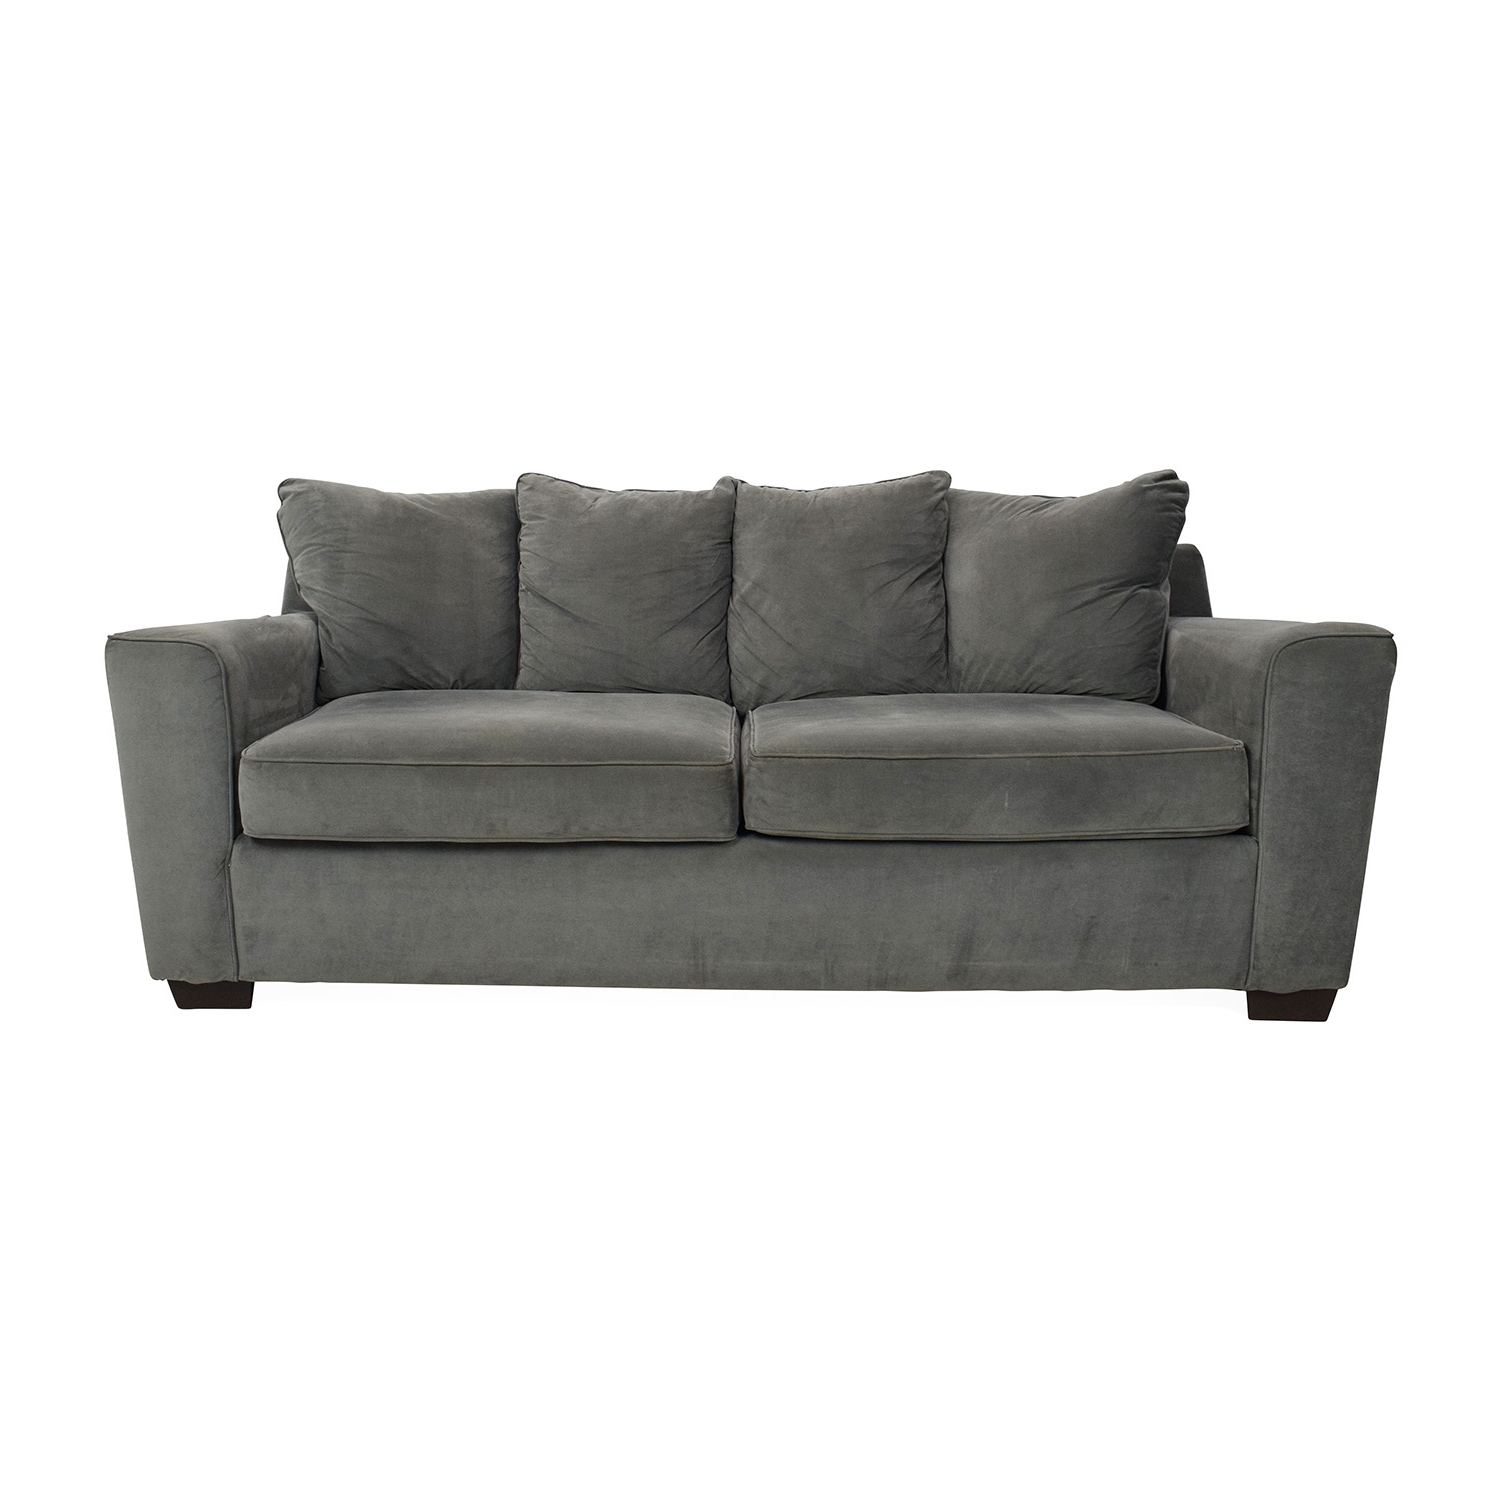 [%53% Off – Jennifer Convertibles Jennifer Convertibles Grey Couch Pertaining To Current Jennifer Sofas|Jennifer Sofas Within Well Known 53% Off – Jennifer Convertibles Jennifer Convertibles Grey Couch|Preferred Jennifer Sofas Within 53% Off – Jennifer Convertibles Jennifer Convertibles Grey Couch|Fashionable 53% Off – Jennifer Convertibles Jennifer Convertibles Grey Couch With Regard To Jennifer Sofas%] (View 1 of 15)